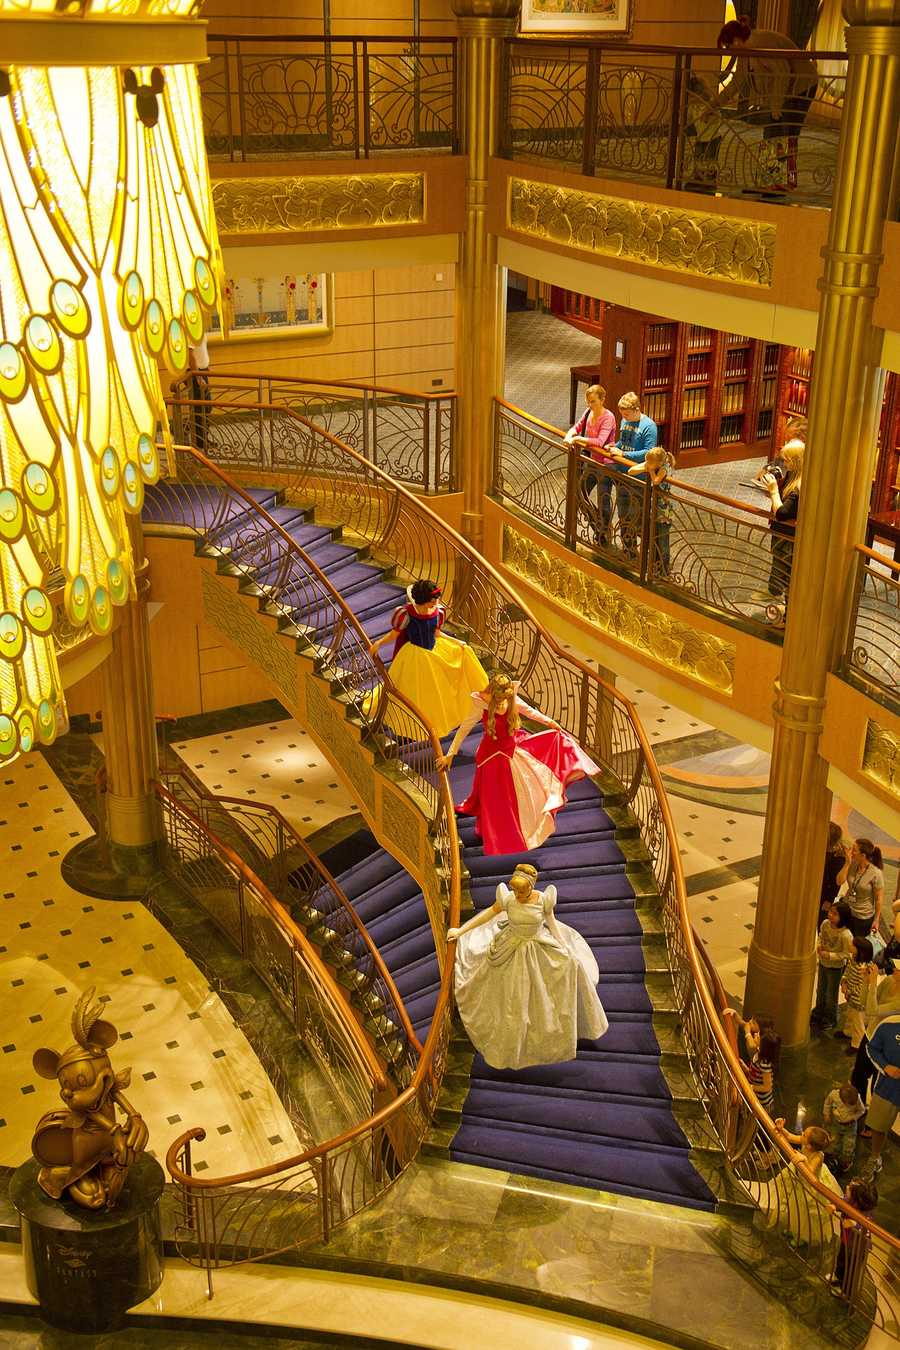 Minnie Mouse is located in the lobby of the Disney Fantasy.